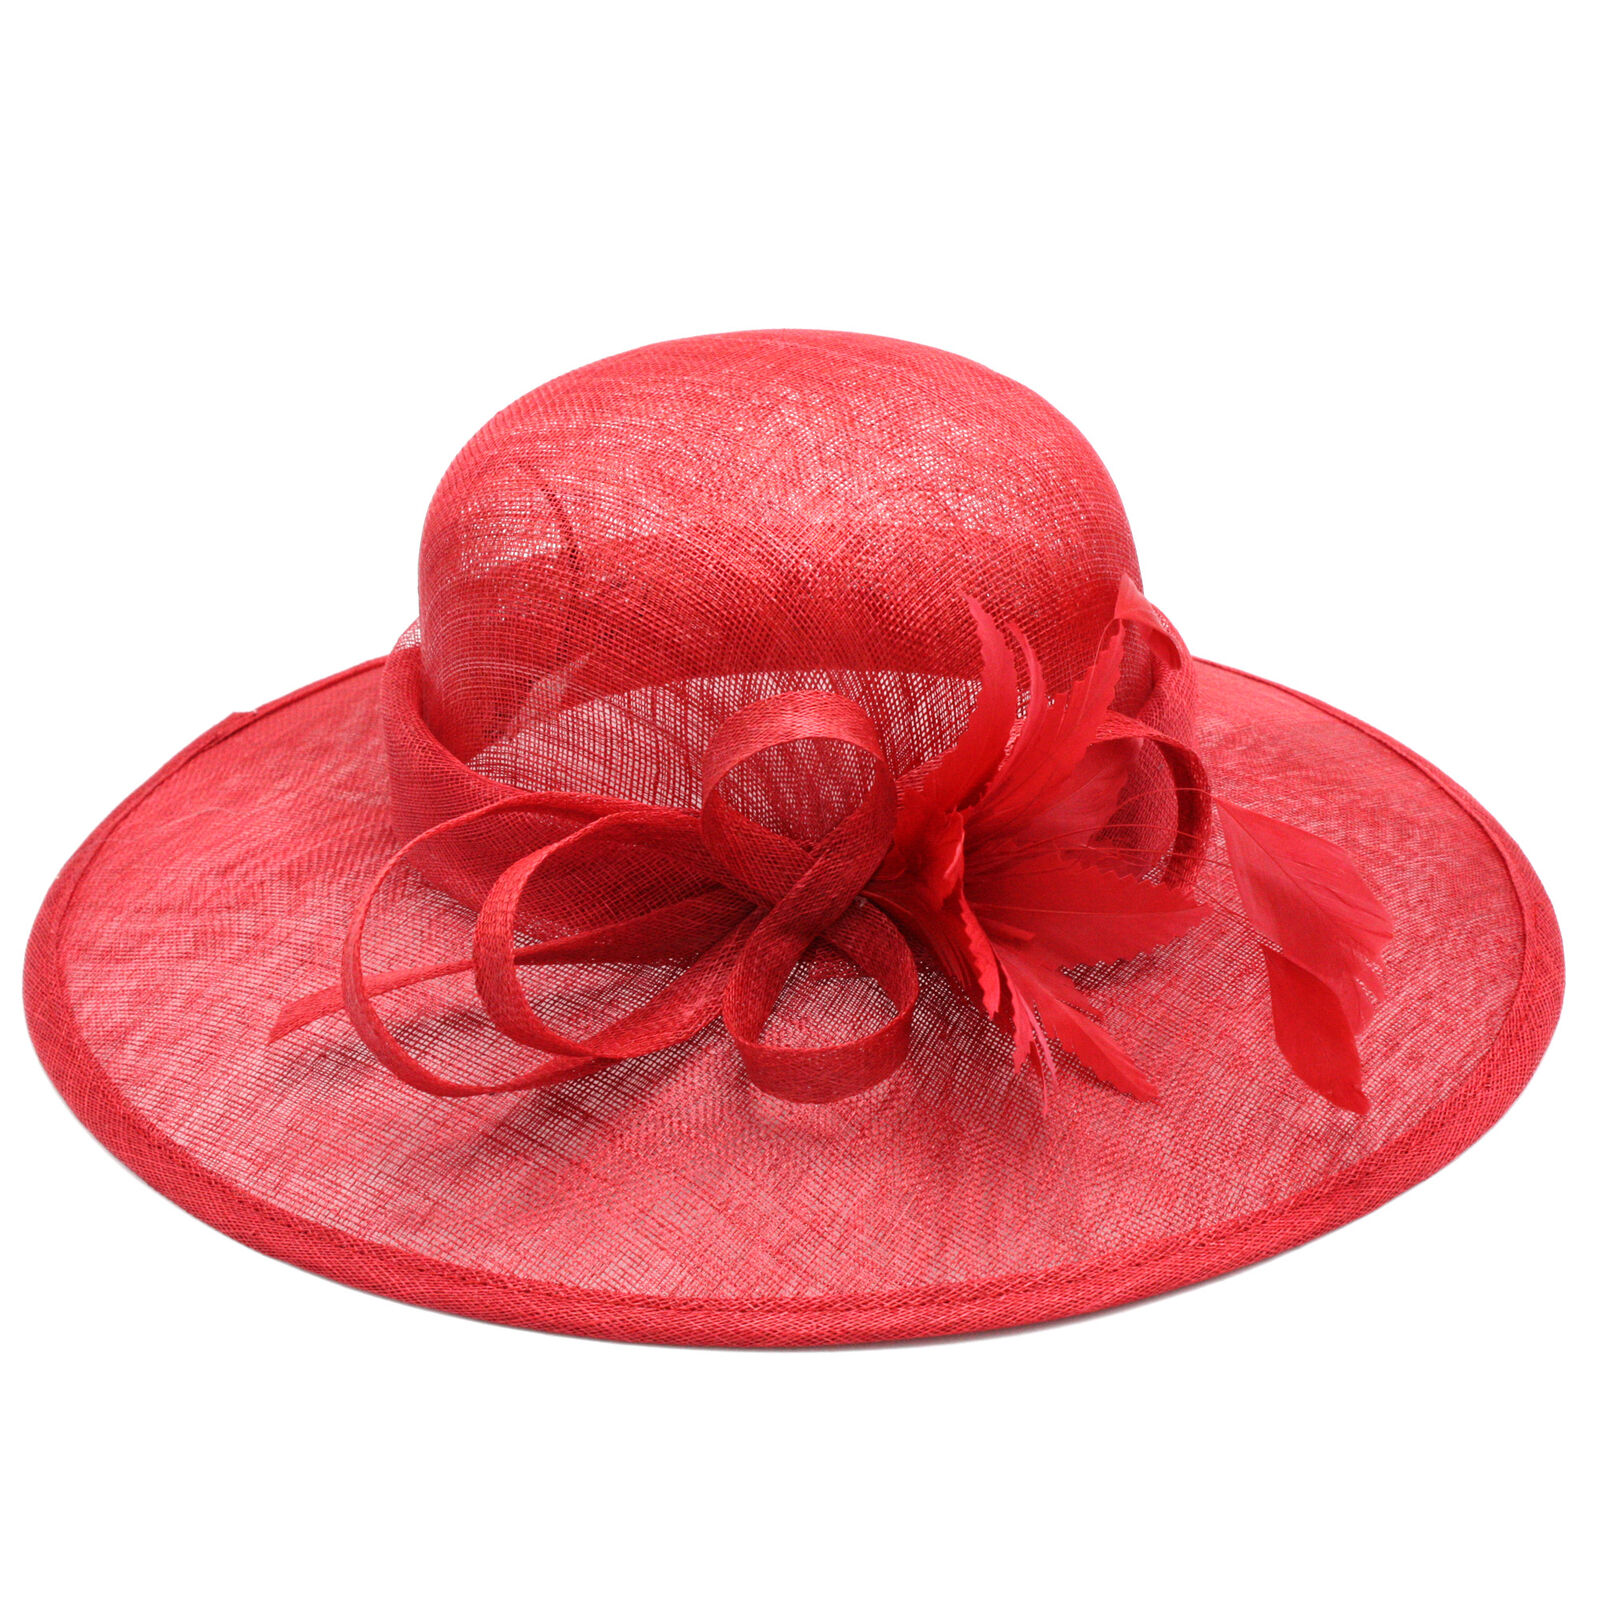 Wedding hat picture hat bow feather gramophone (red, black, ivory, green) new